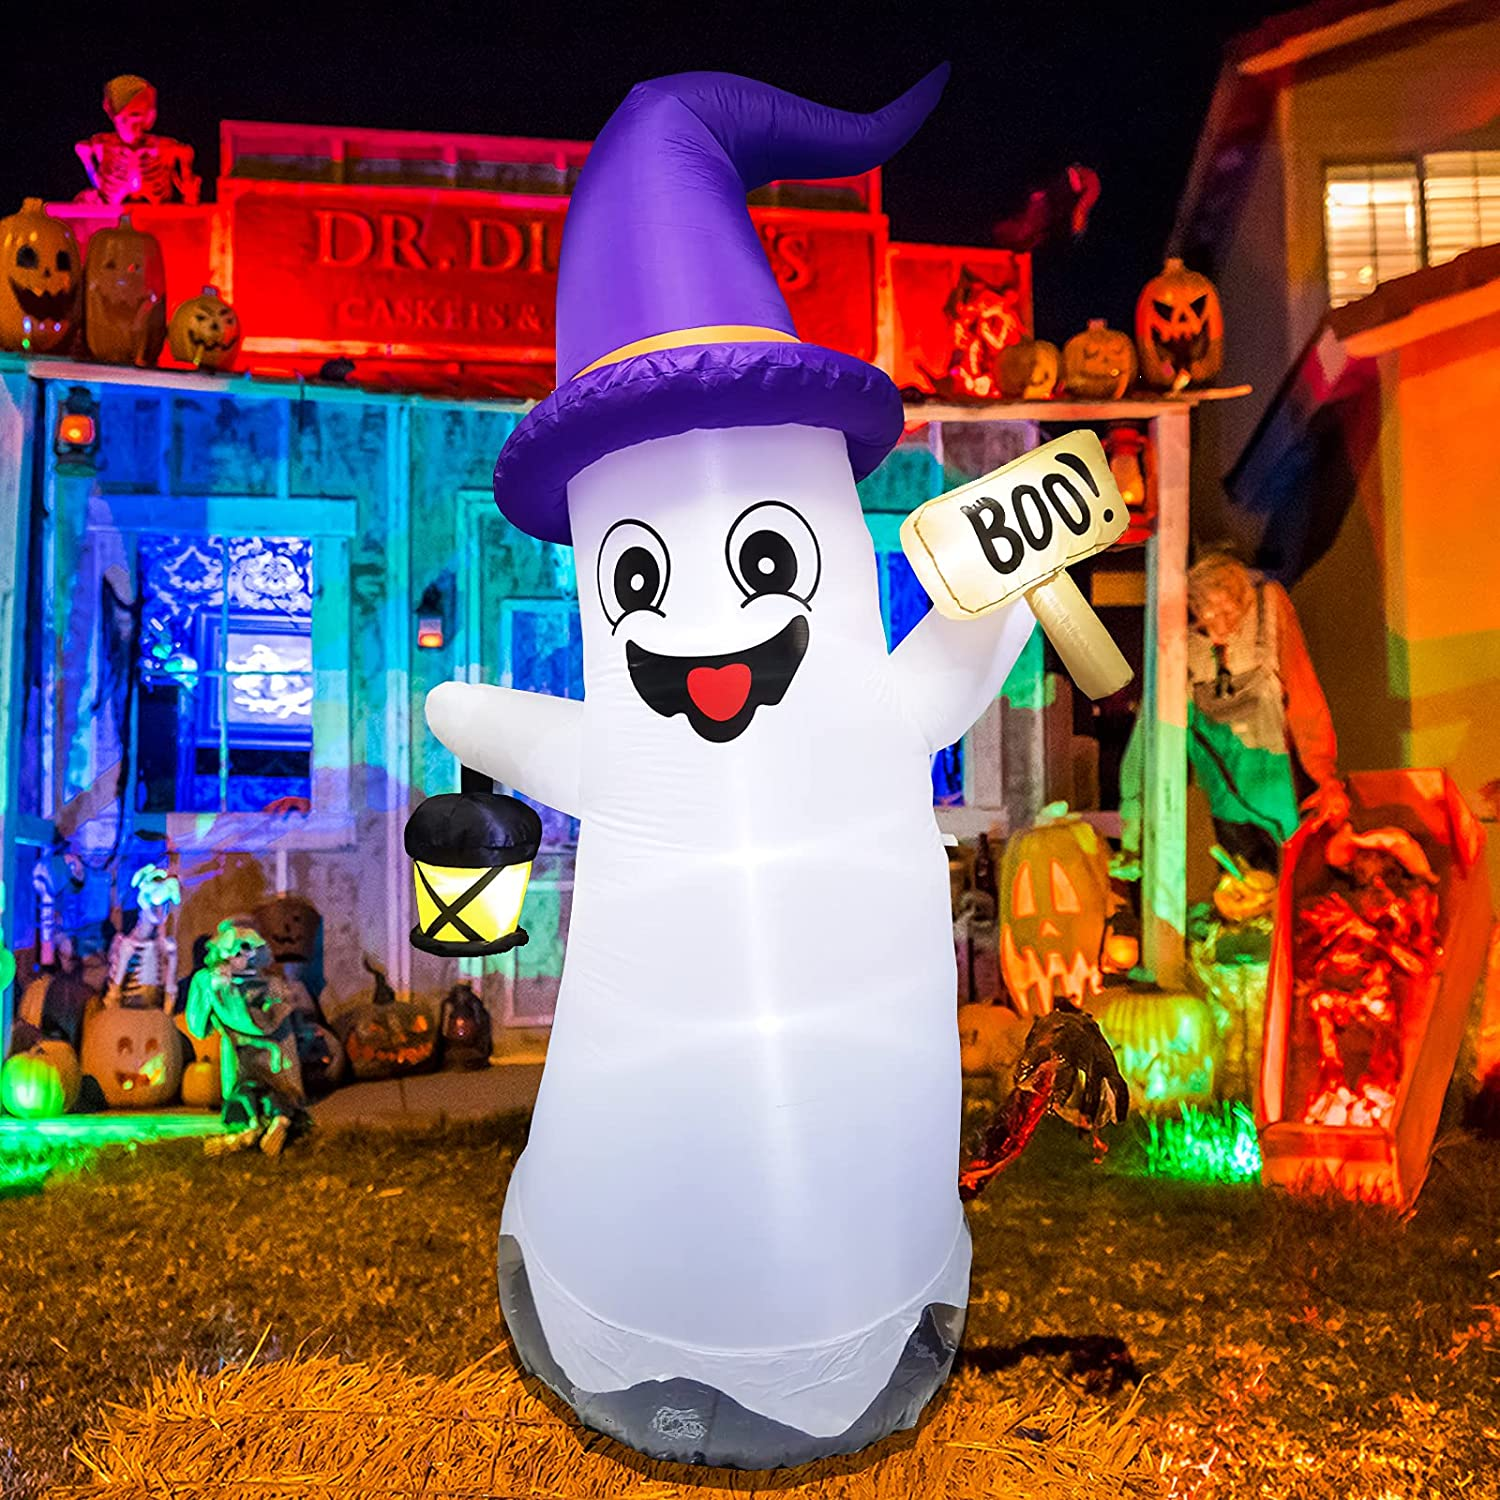 UMARDOO Halloween Inflatables Decorations, 8FT Halloween Blow Up Ghost with LED Lights, Ghost Inflatables Outdoor Decorations for Halloween Outdoor Yard Decoration